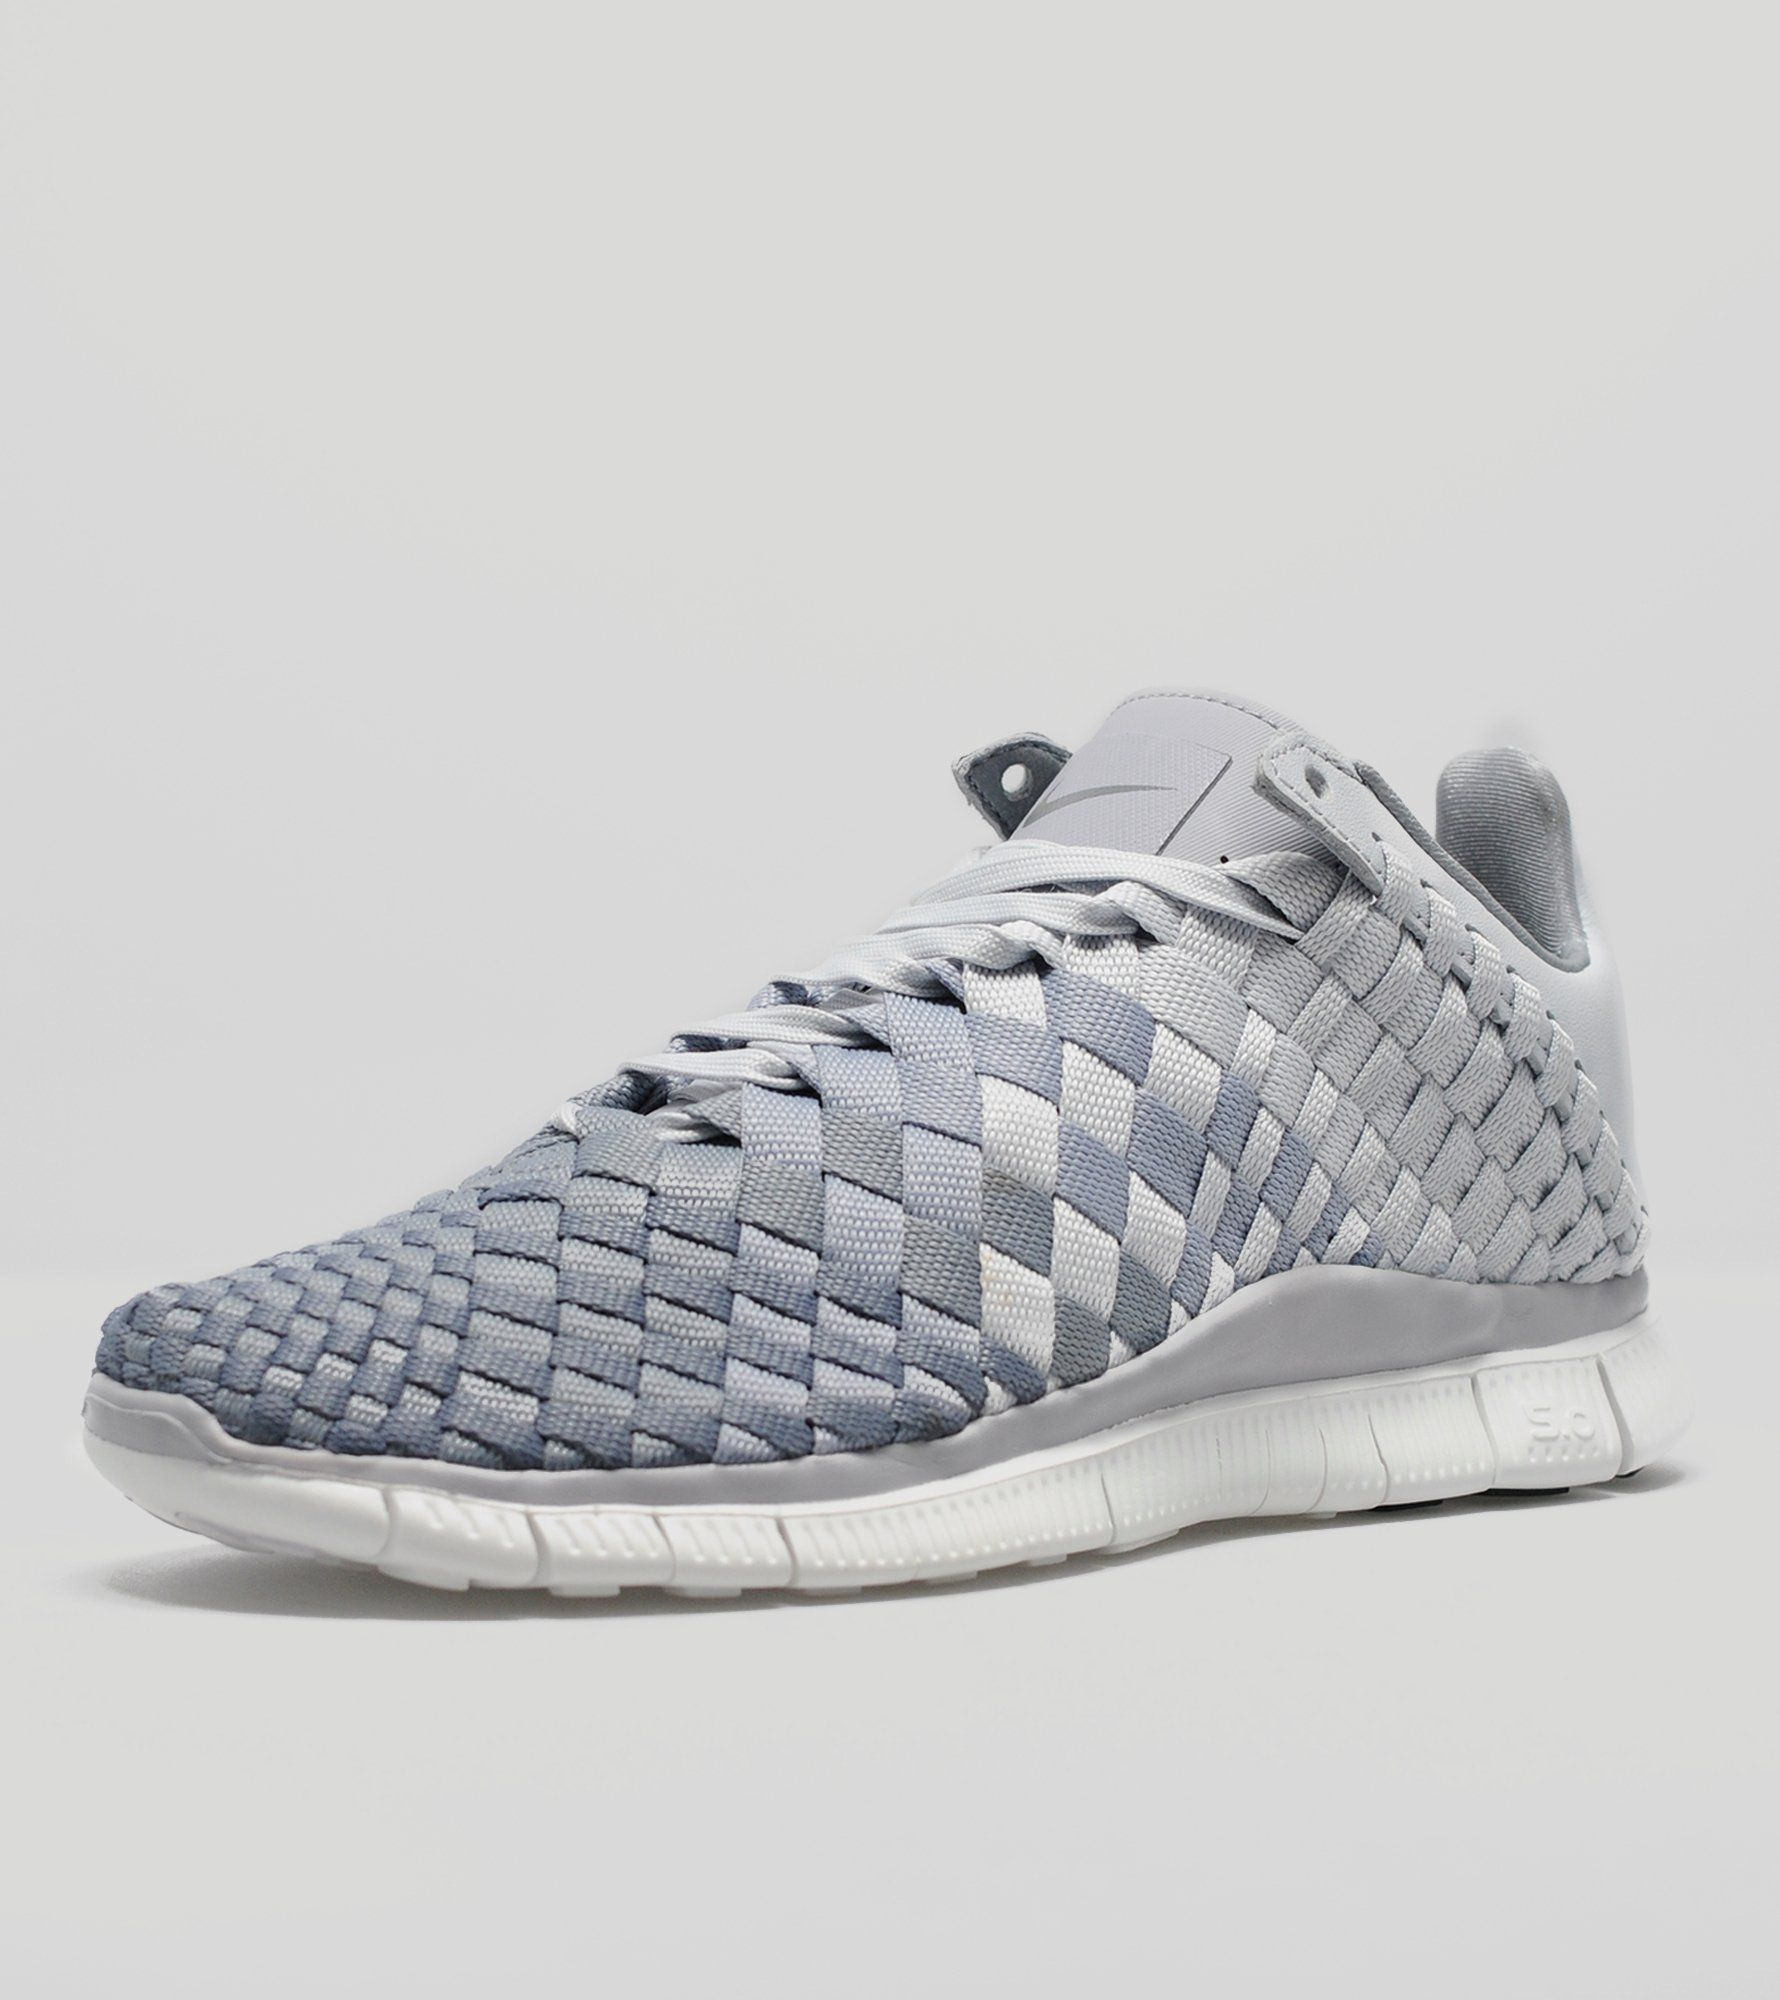 separation shoes 39a96 33ec7 ... get nike free inneva woven womens size 02459 1646f